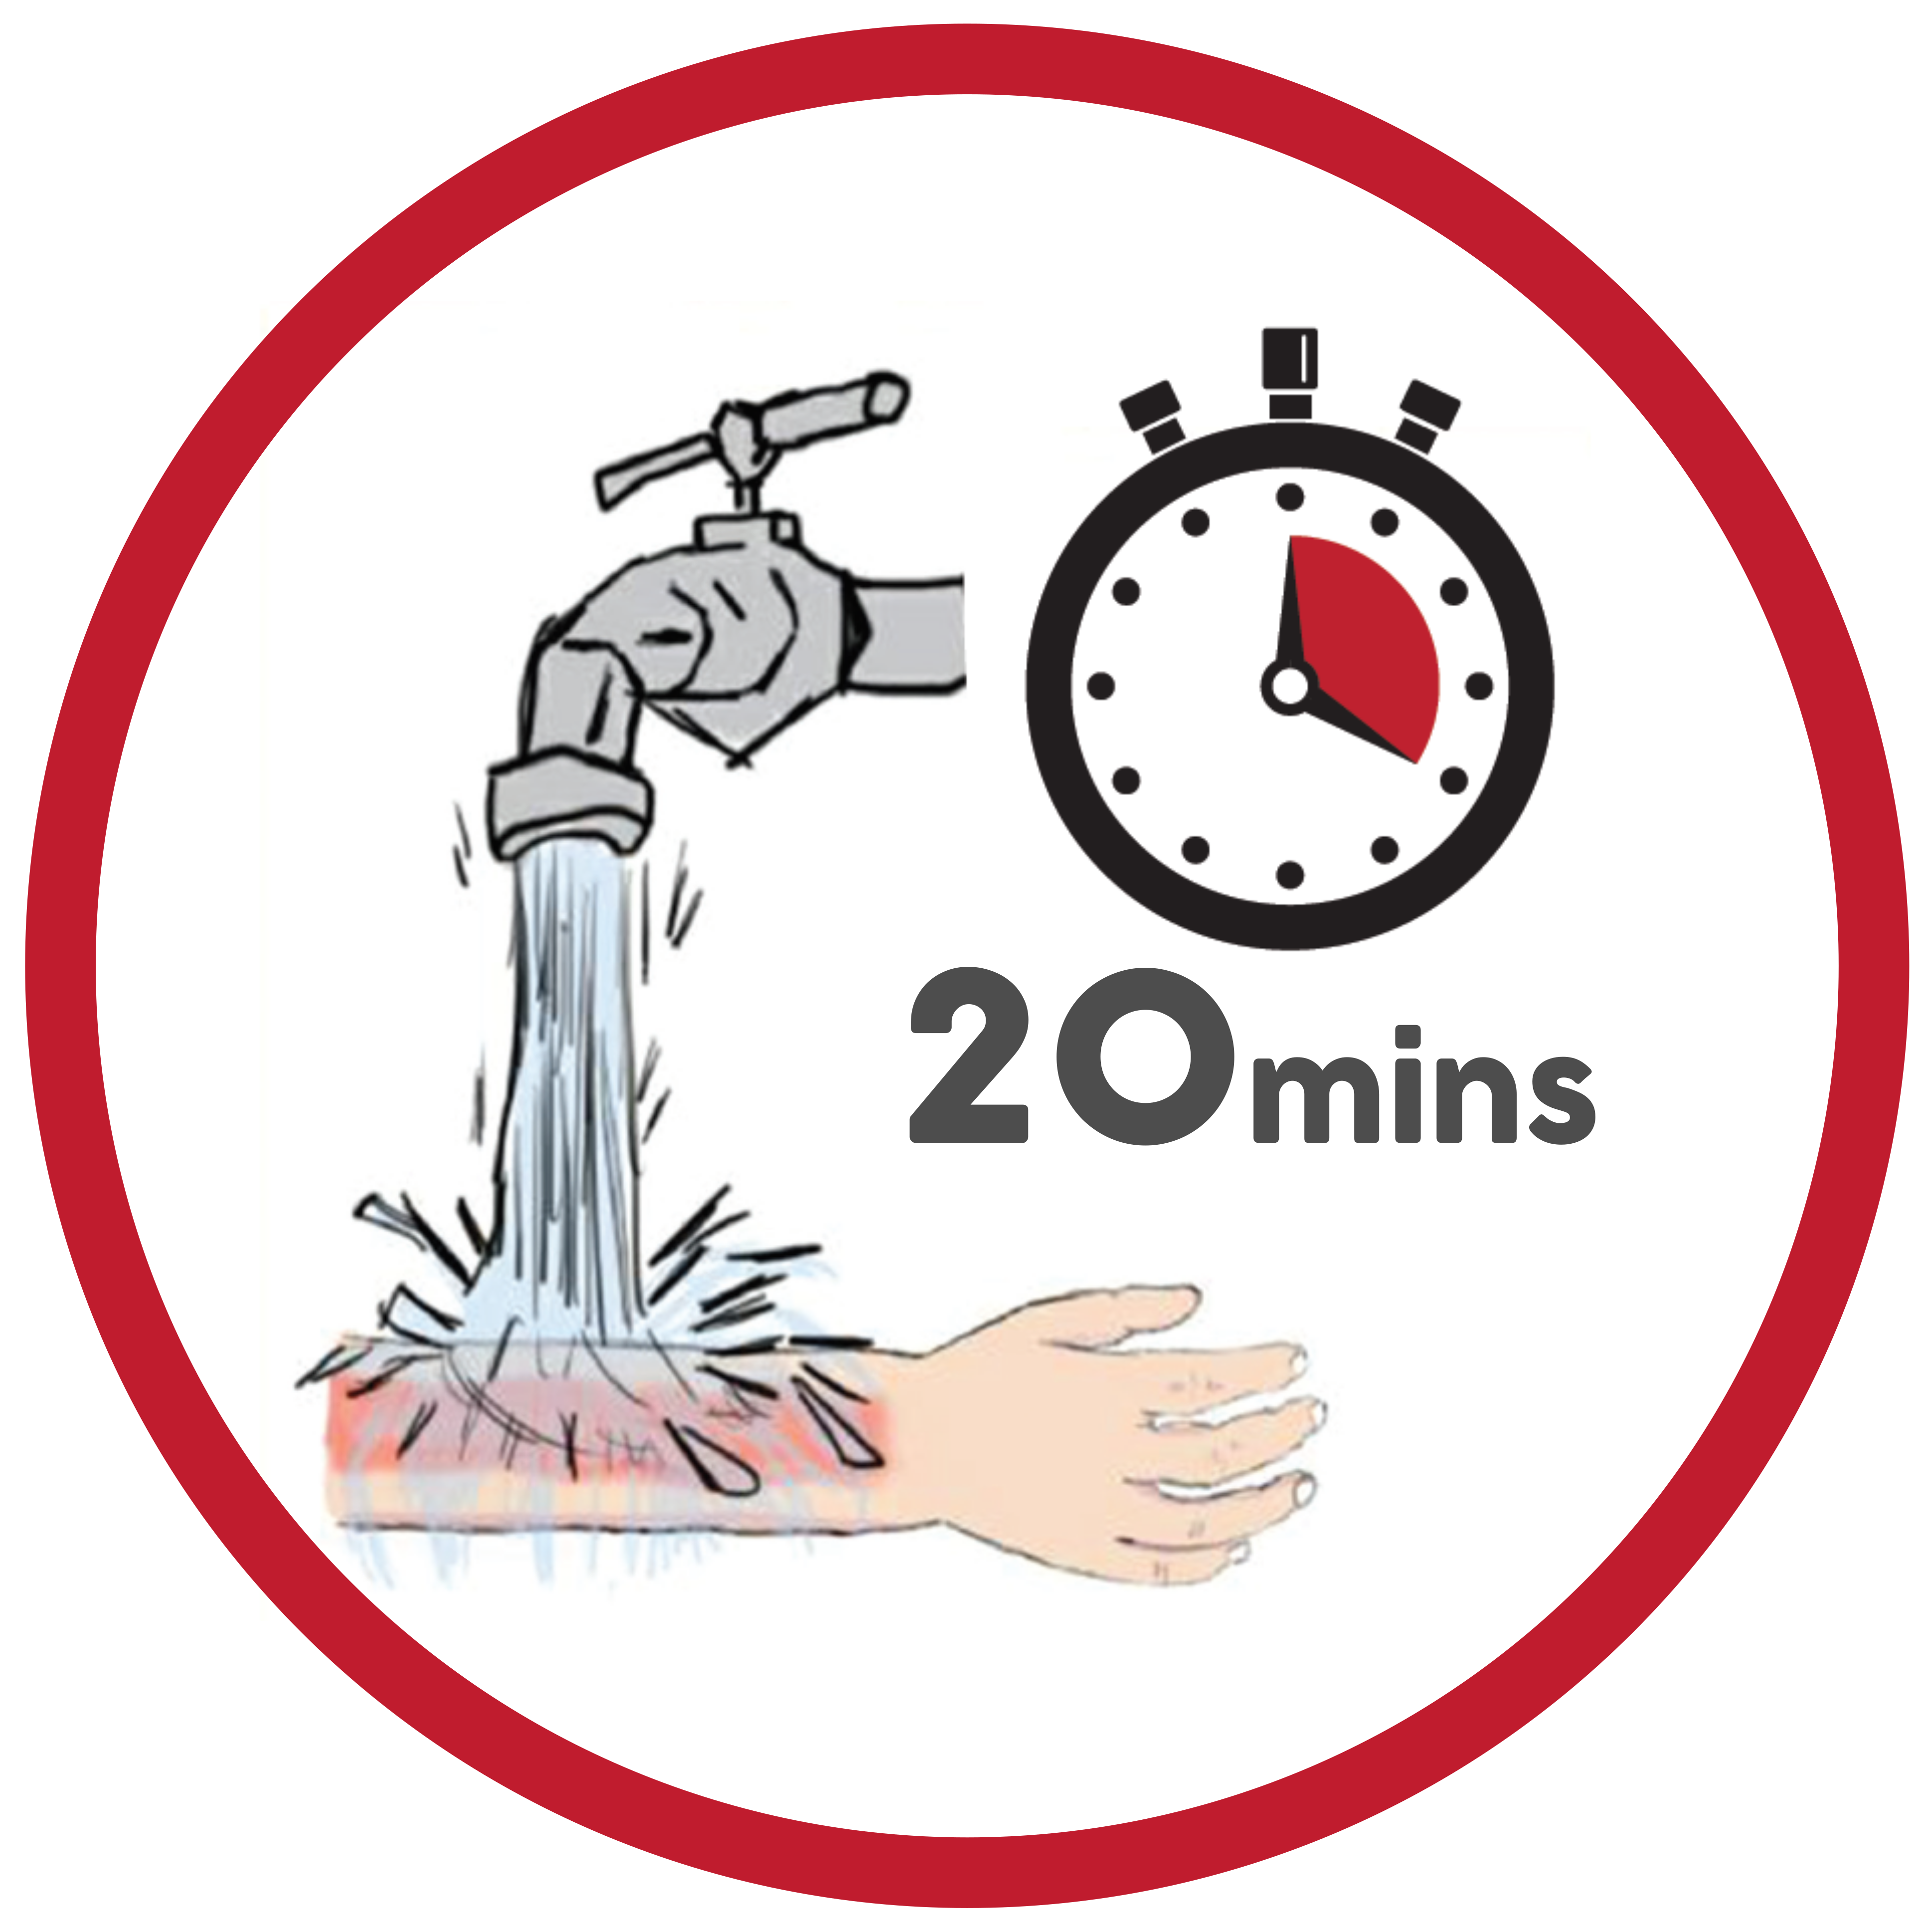 Run cool water on burn for 20 minutes